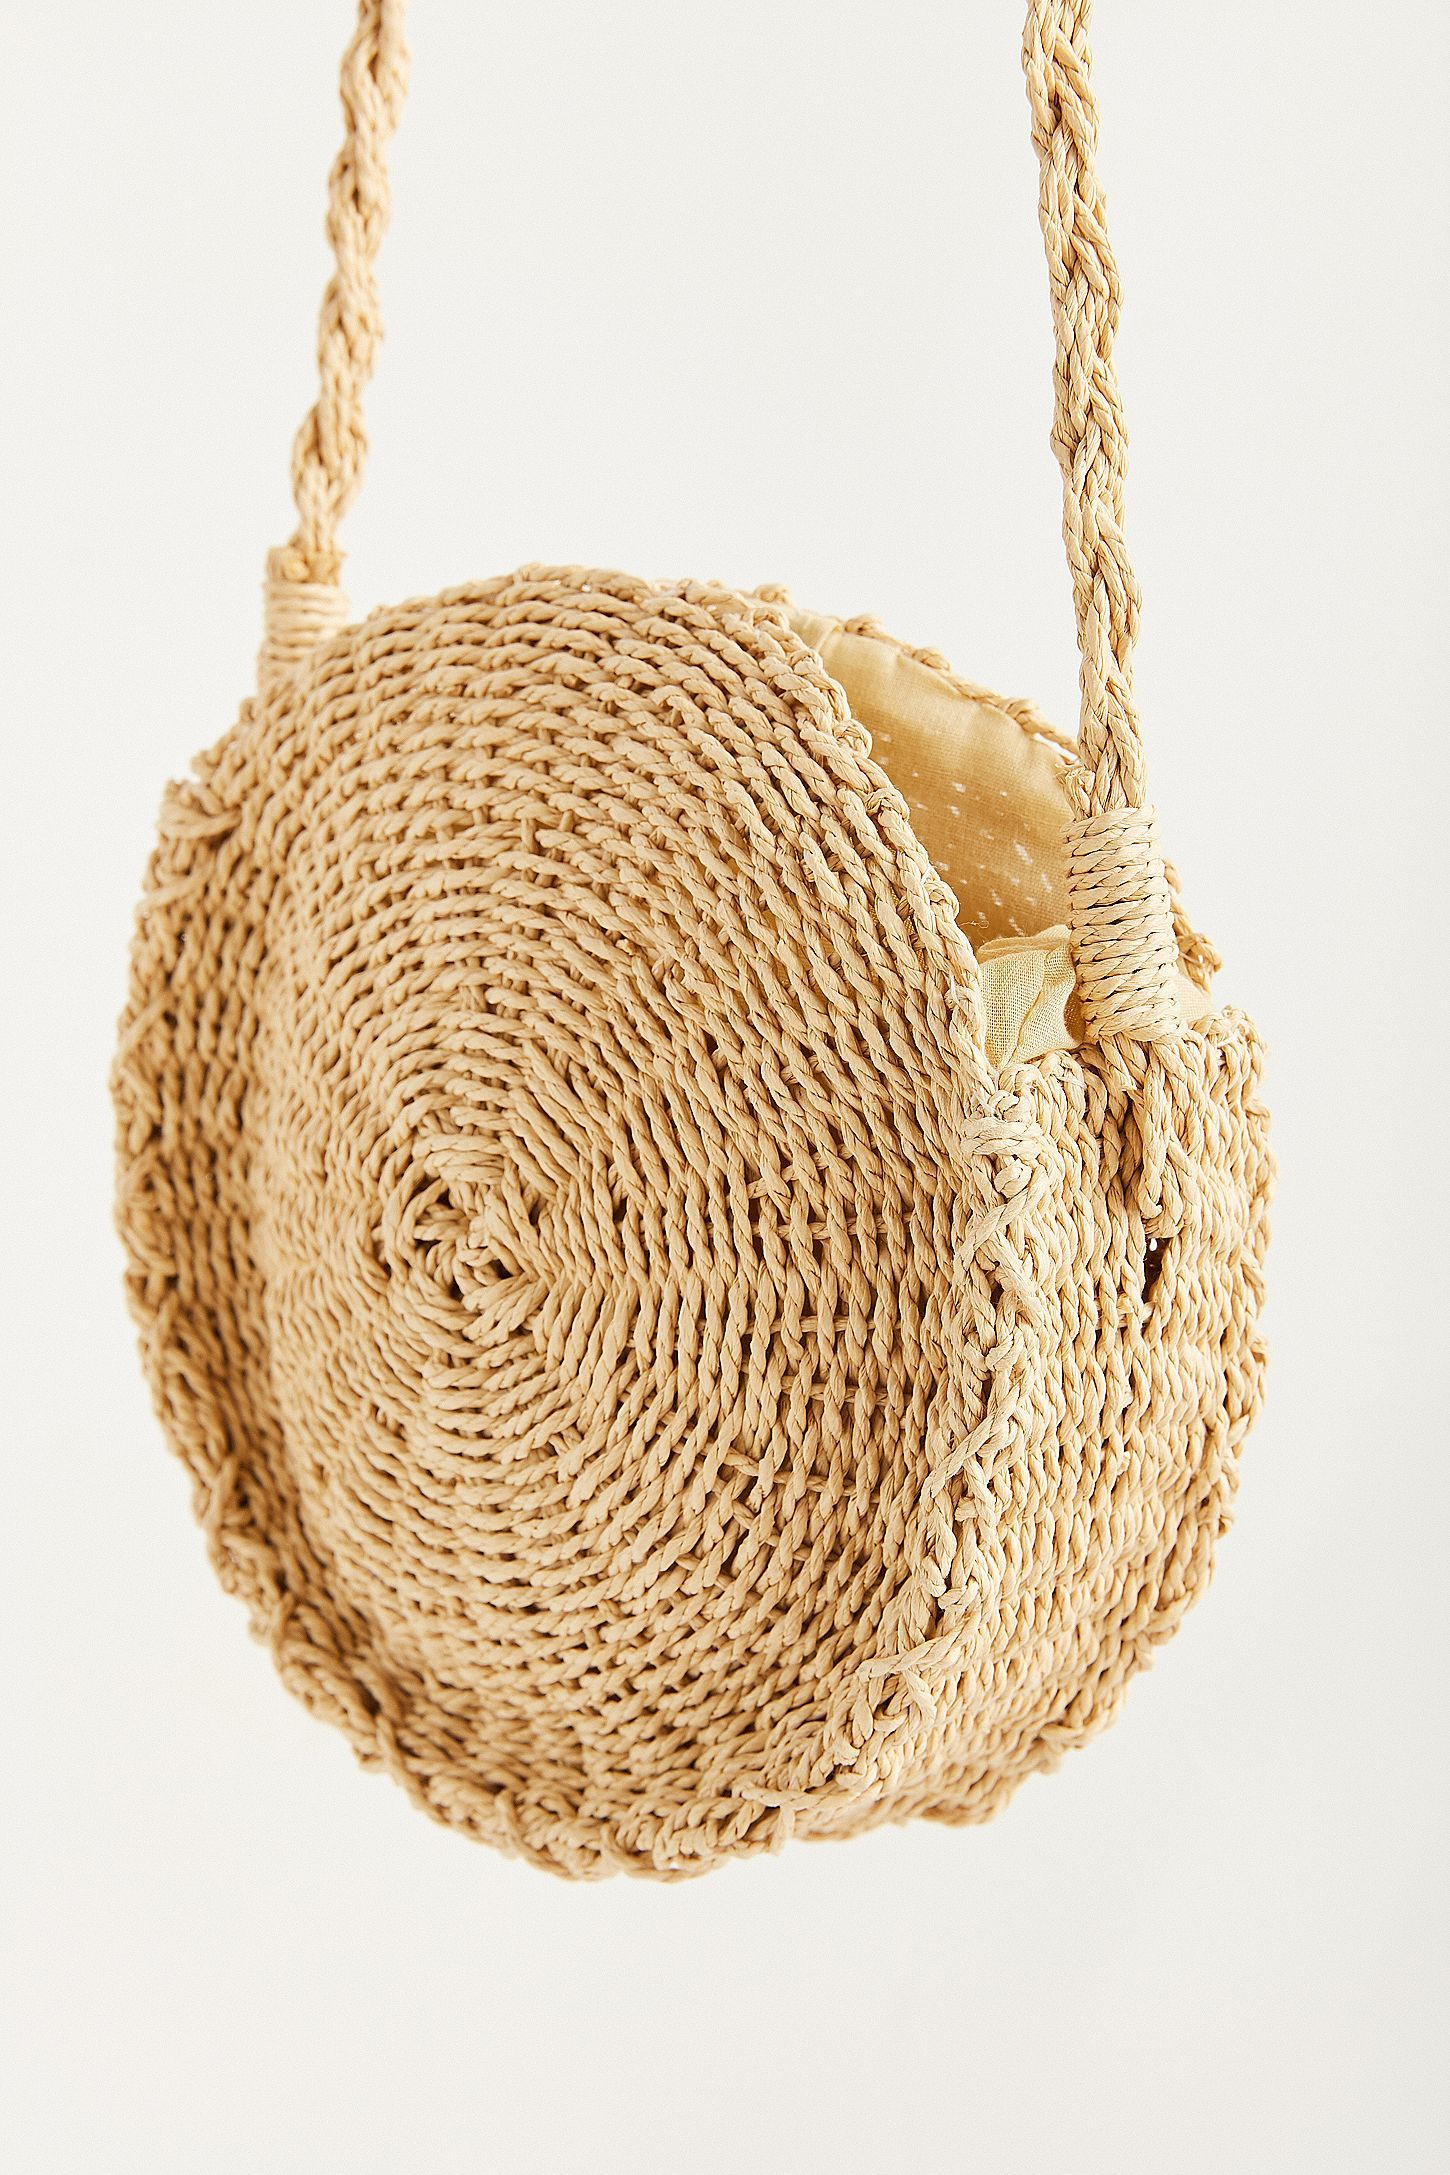 Slide View  3  Small Circle Straw Round Crossbody Bag 0162b74395740